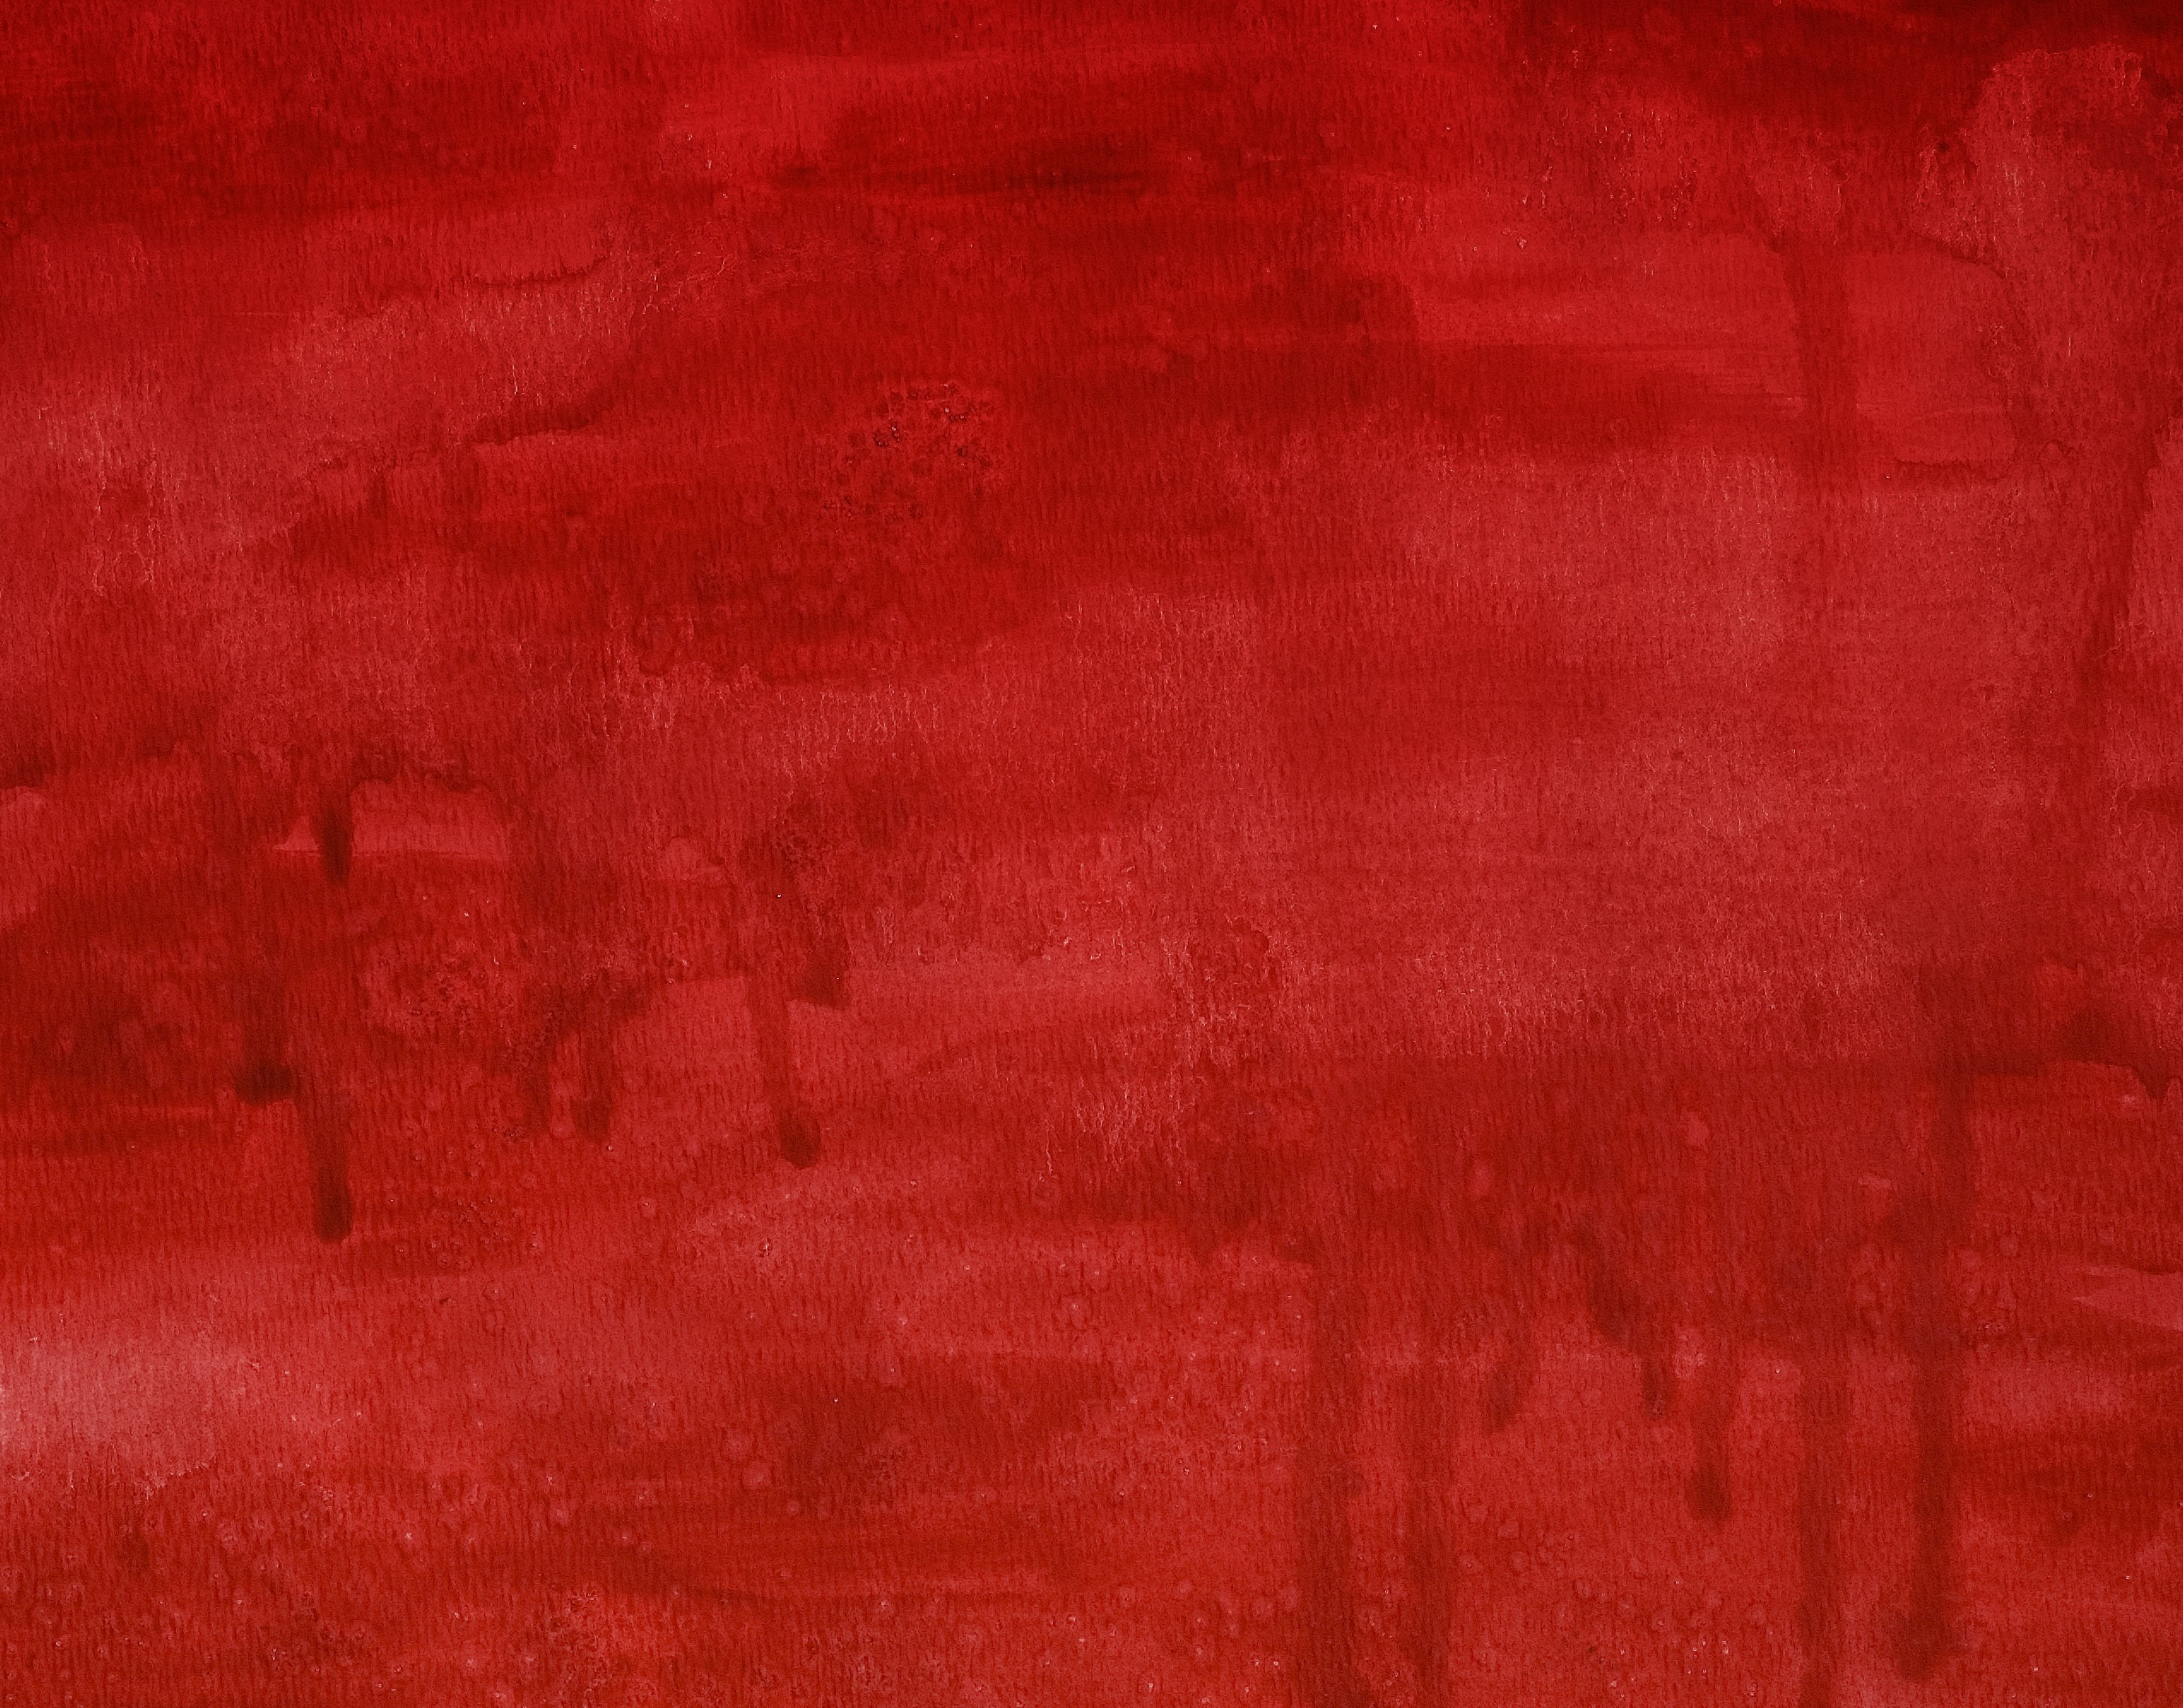 Background Covered By Red Watercolour Free Image